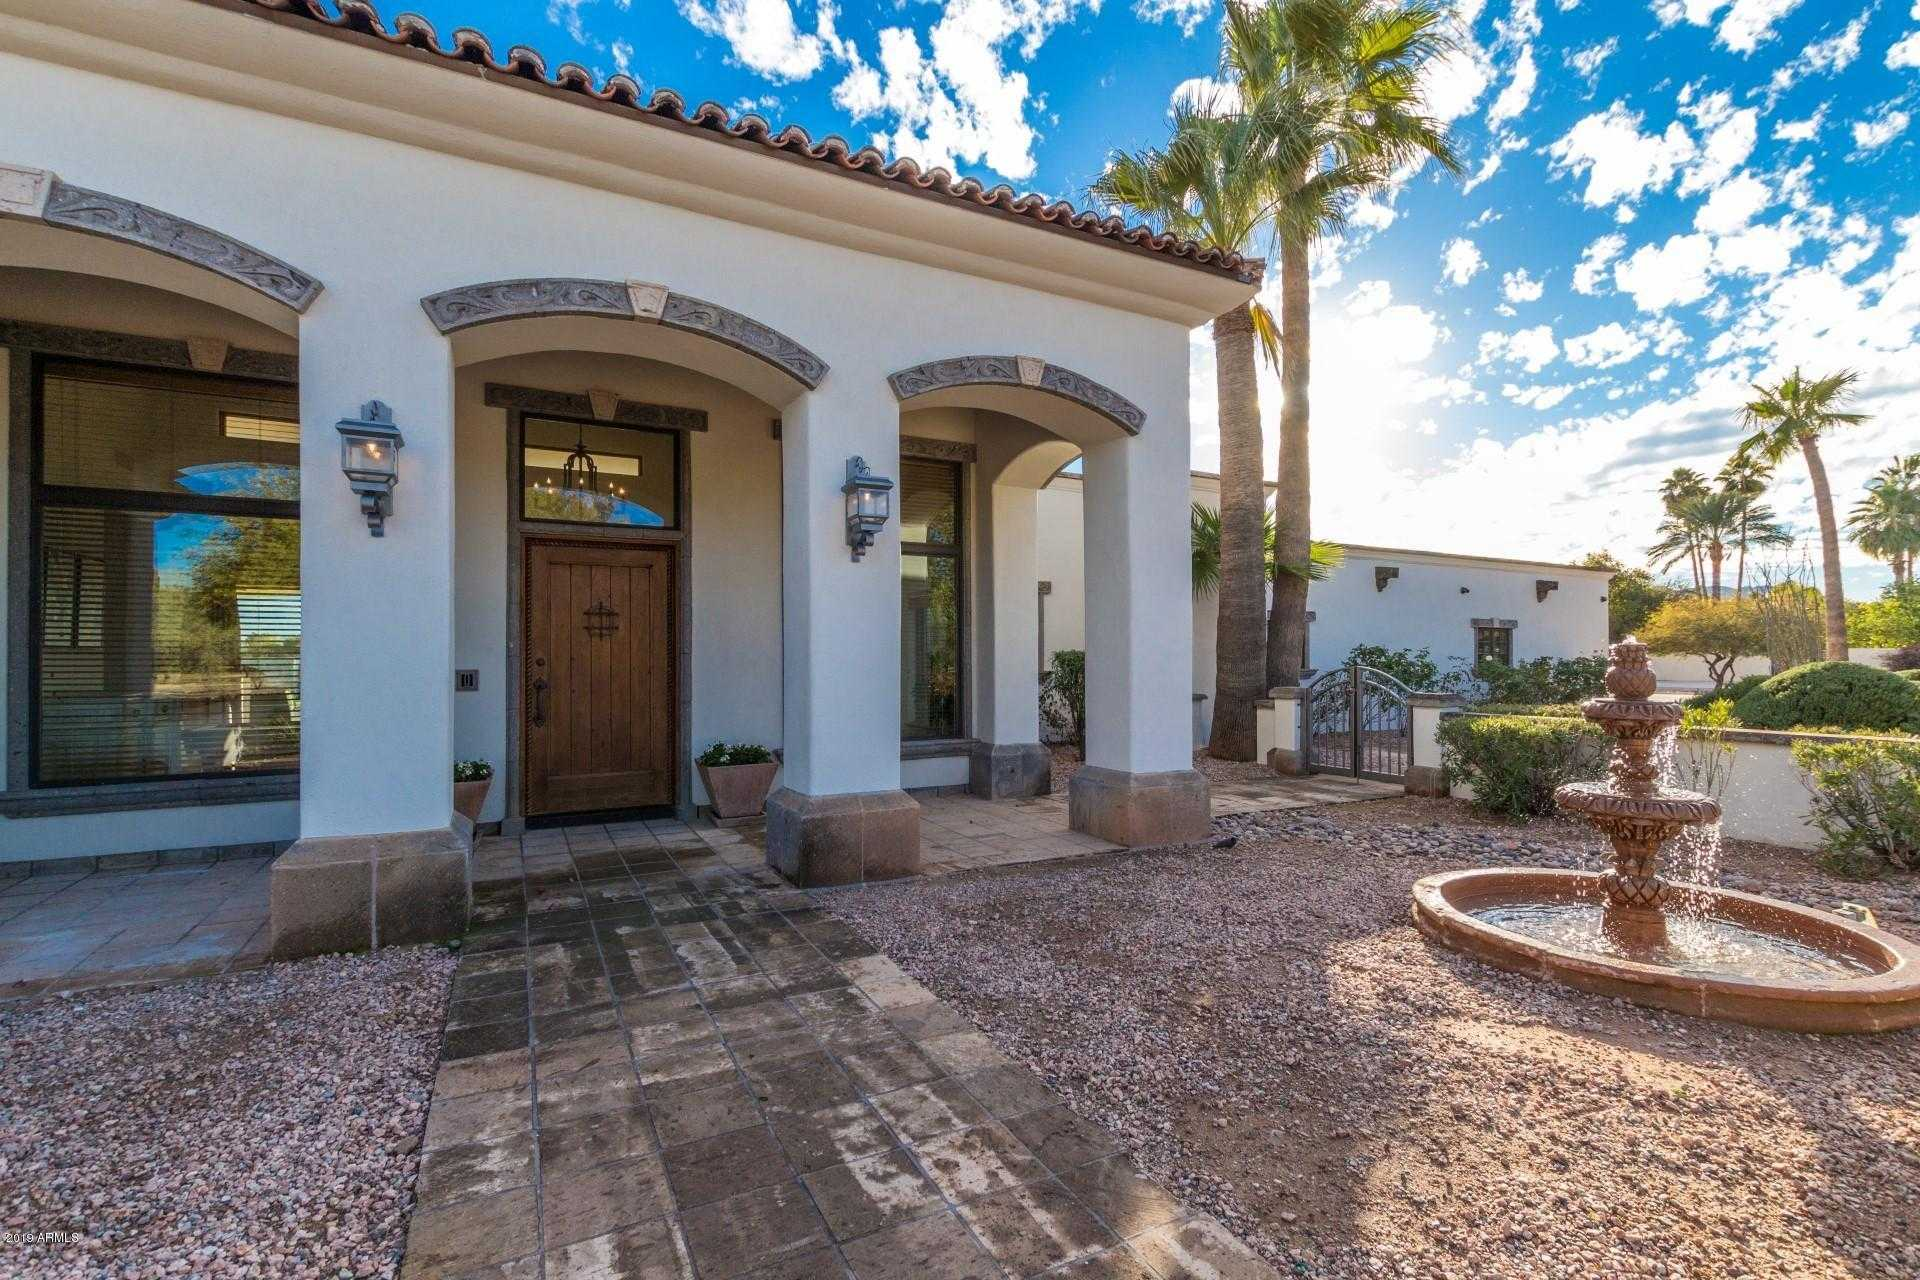 $1,800,000 - 5Br/4Ba - Home for Sale in Fairway Acres Lots 6-18, Paradise Valley